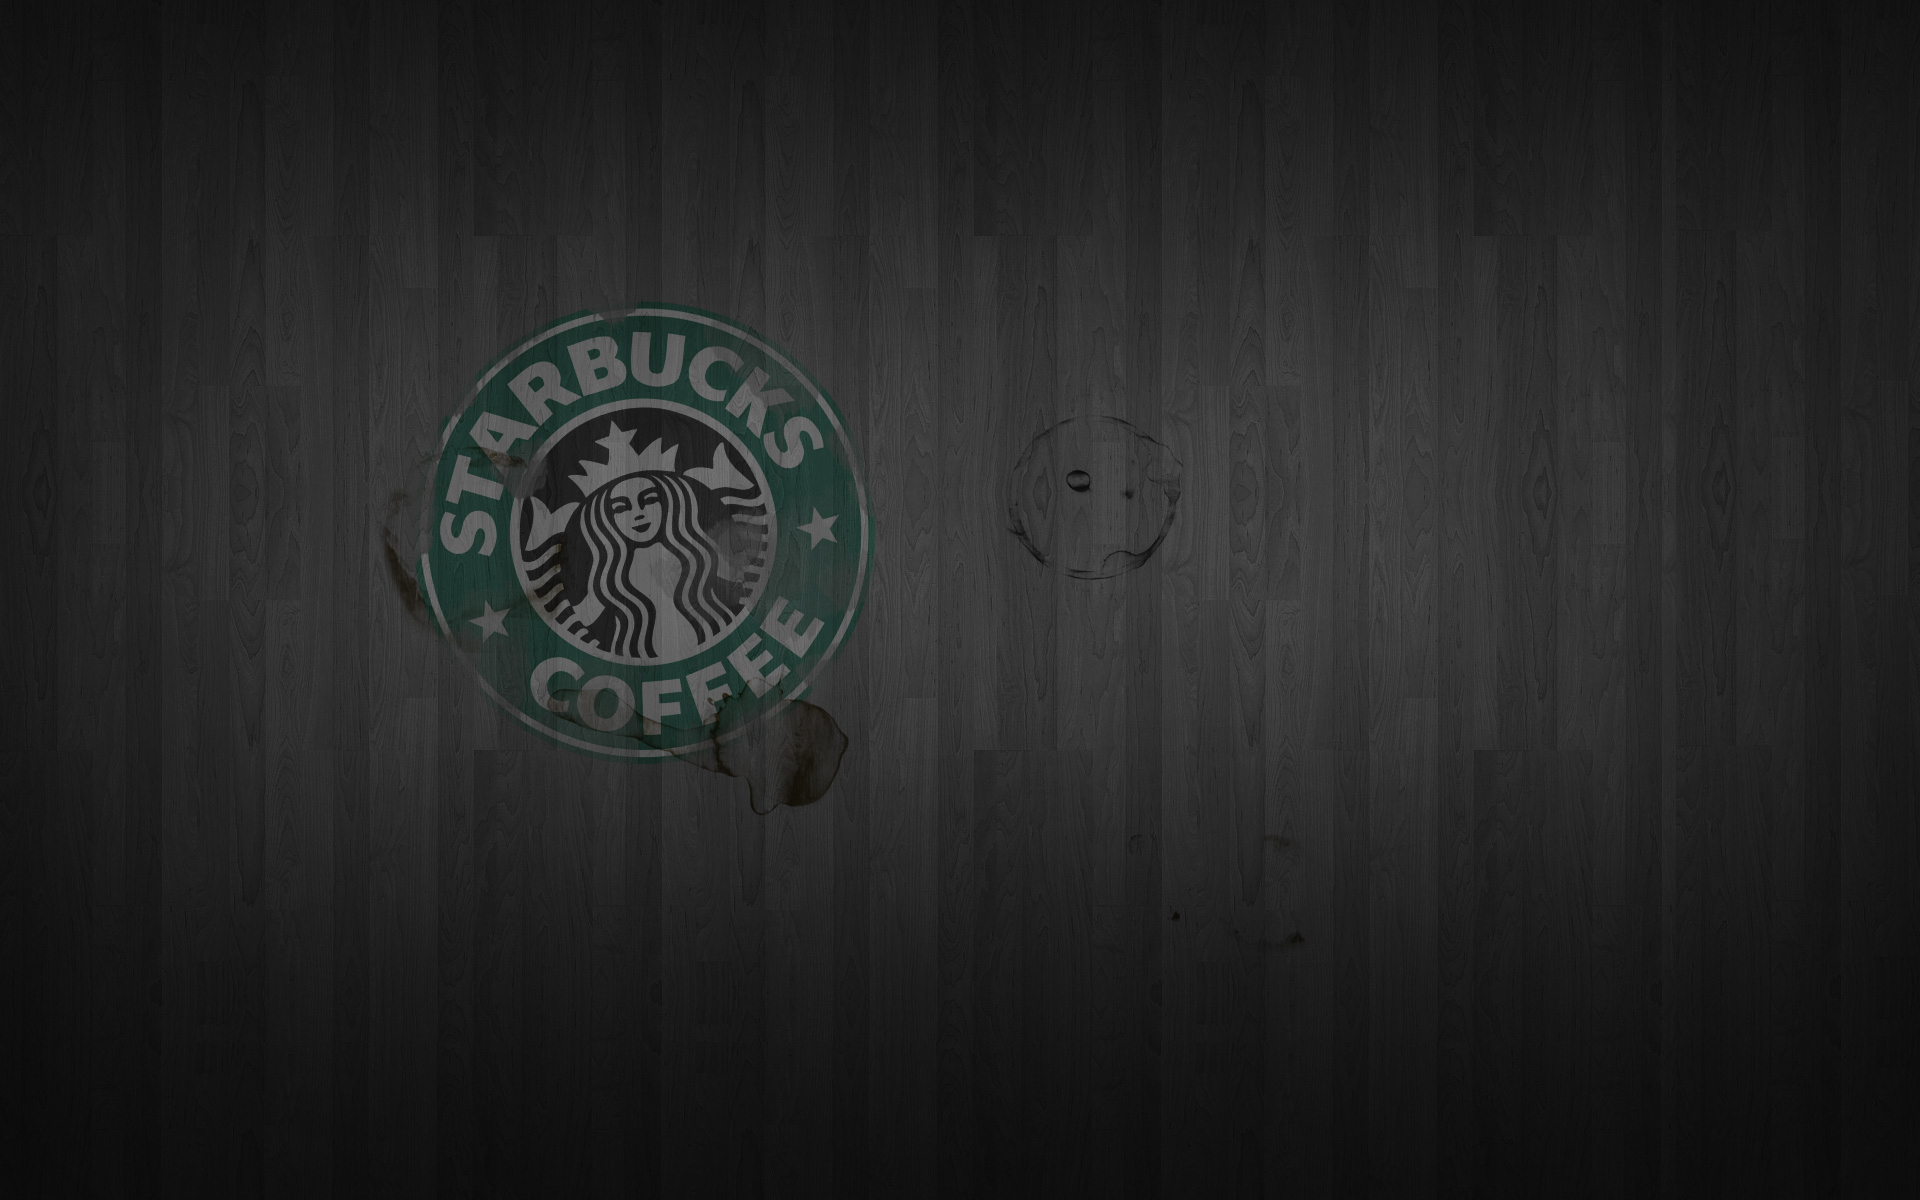 Starbucks Wallpaper by hastati95 Starbucks Wallpaper by hastati95